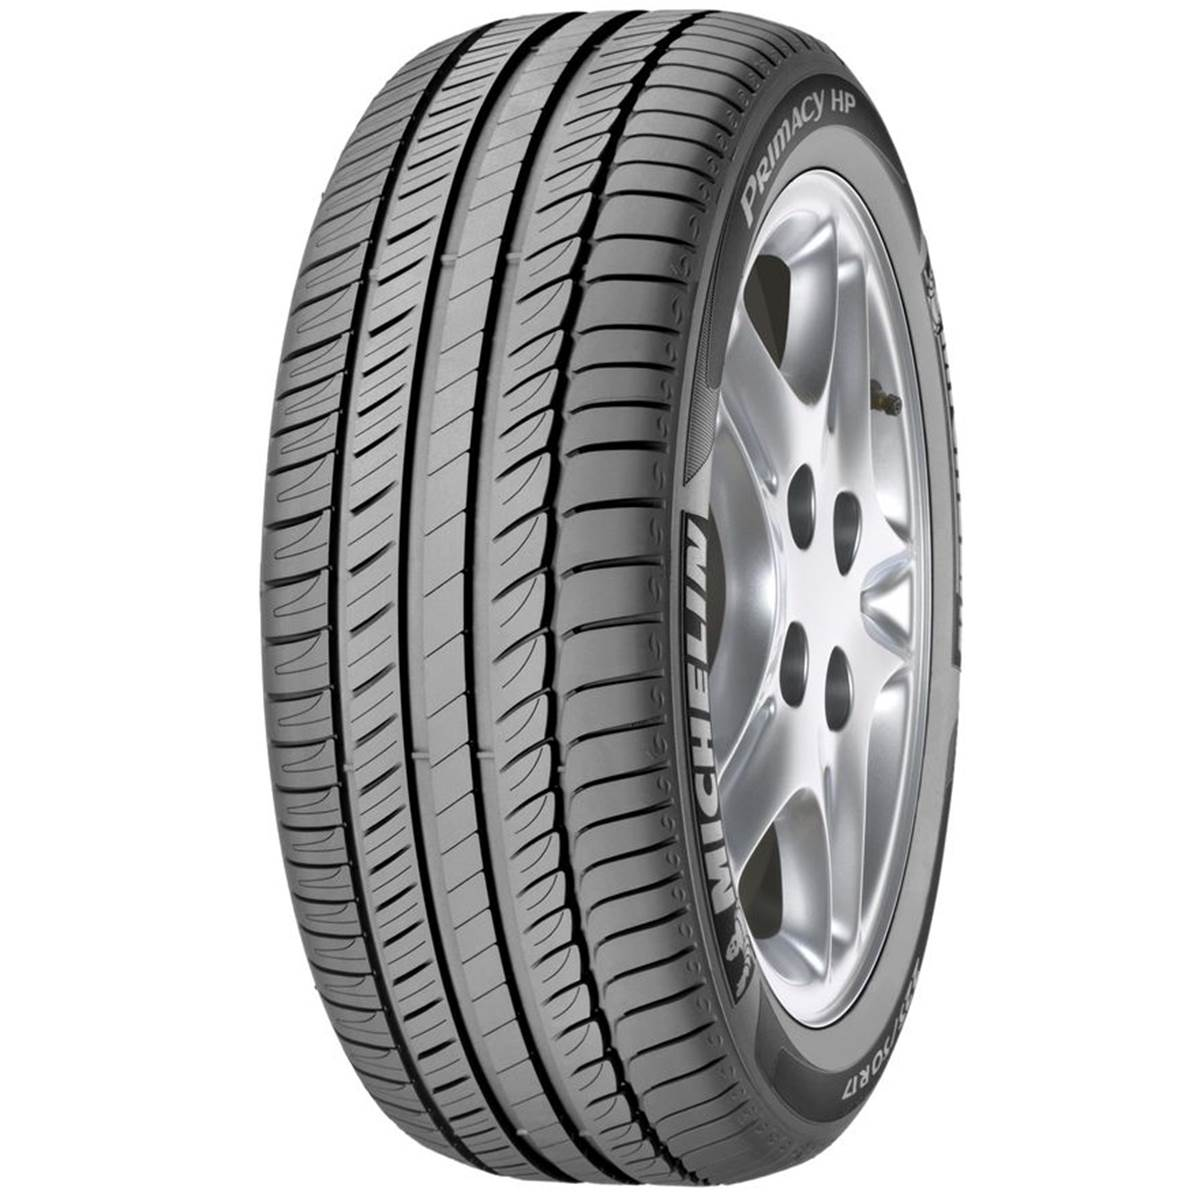 Pneu Michelin 205/55R16 91H Primacy Hp